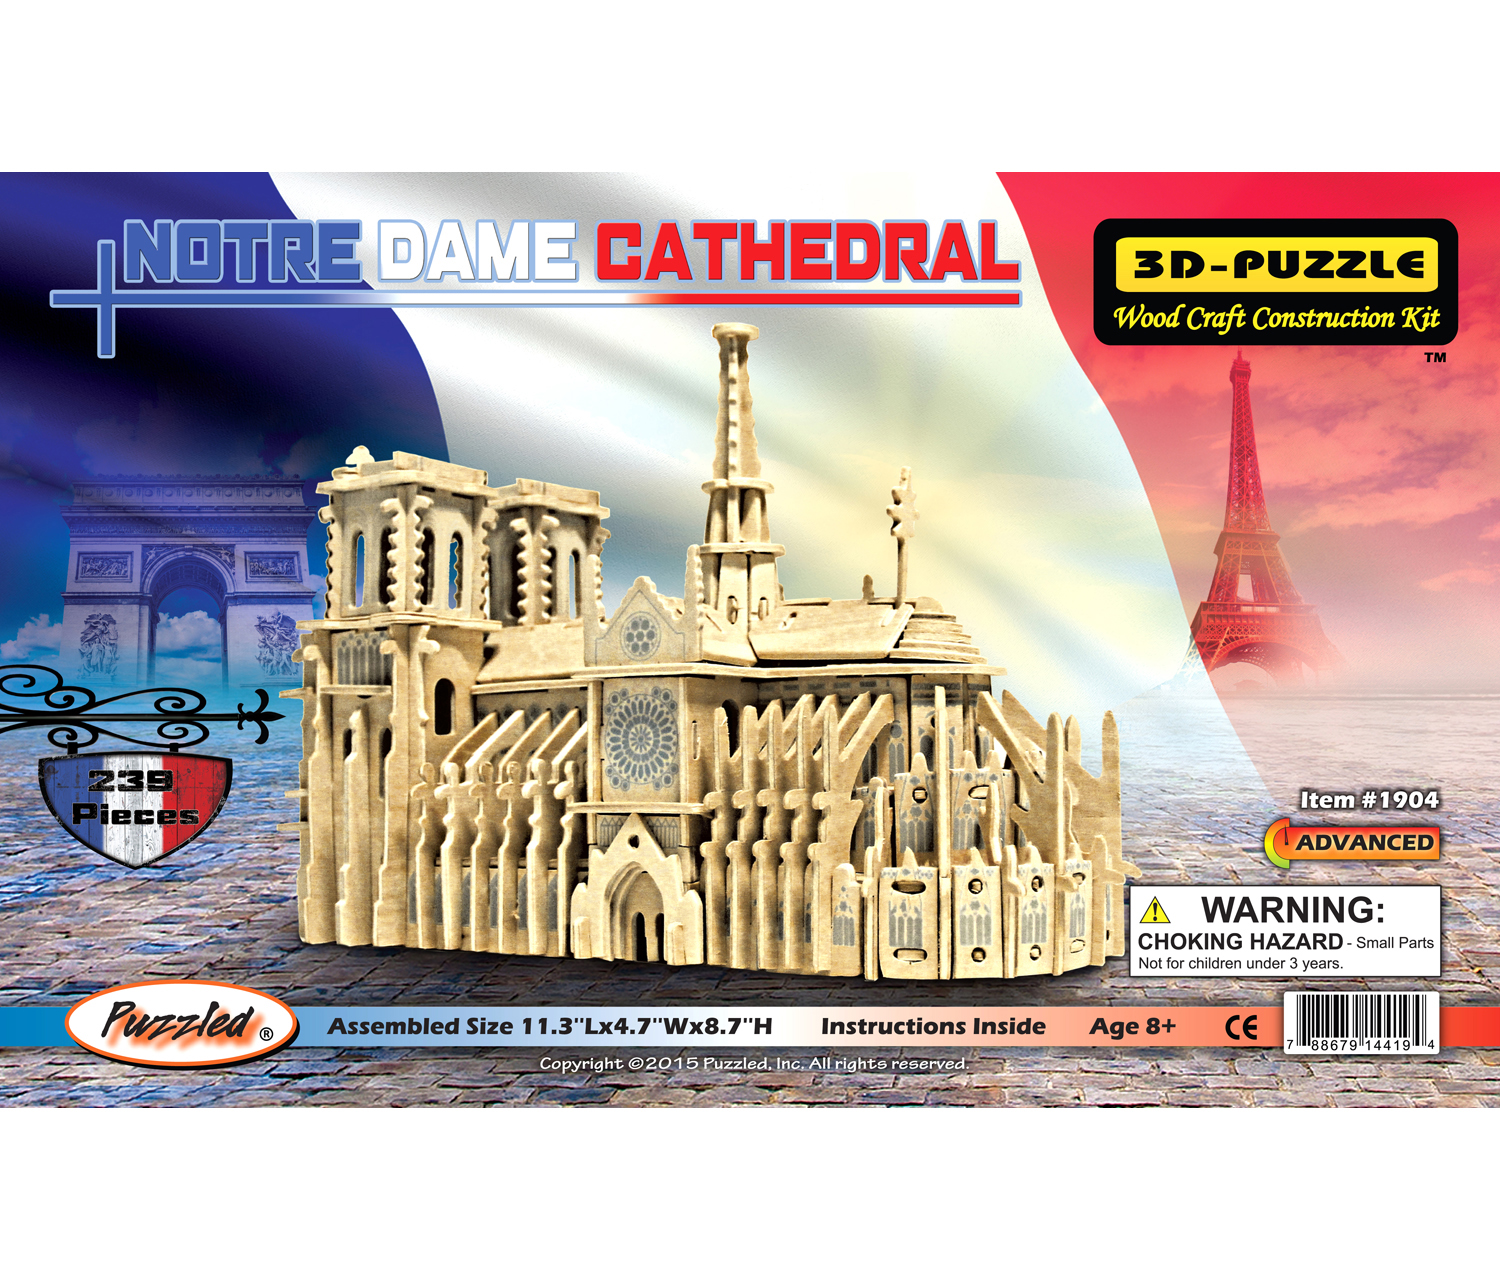 3D Puzzles Notre Dame Cathedral by Puzzled